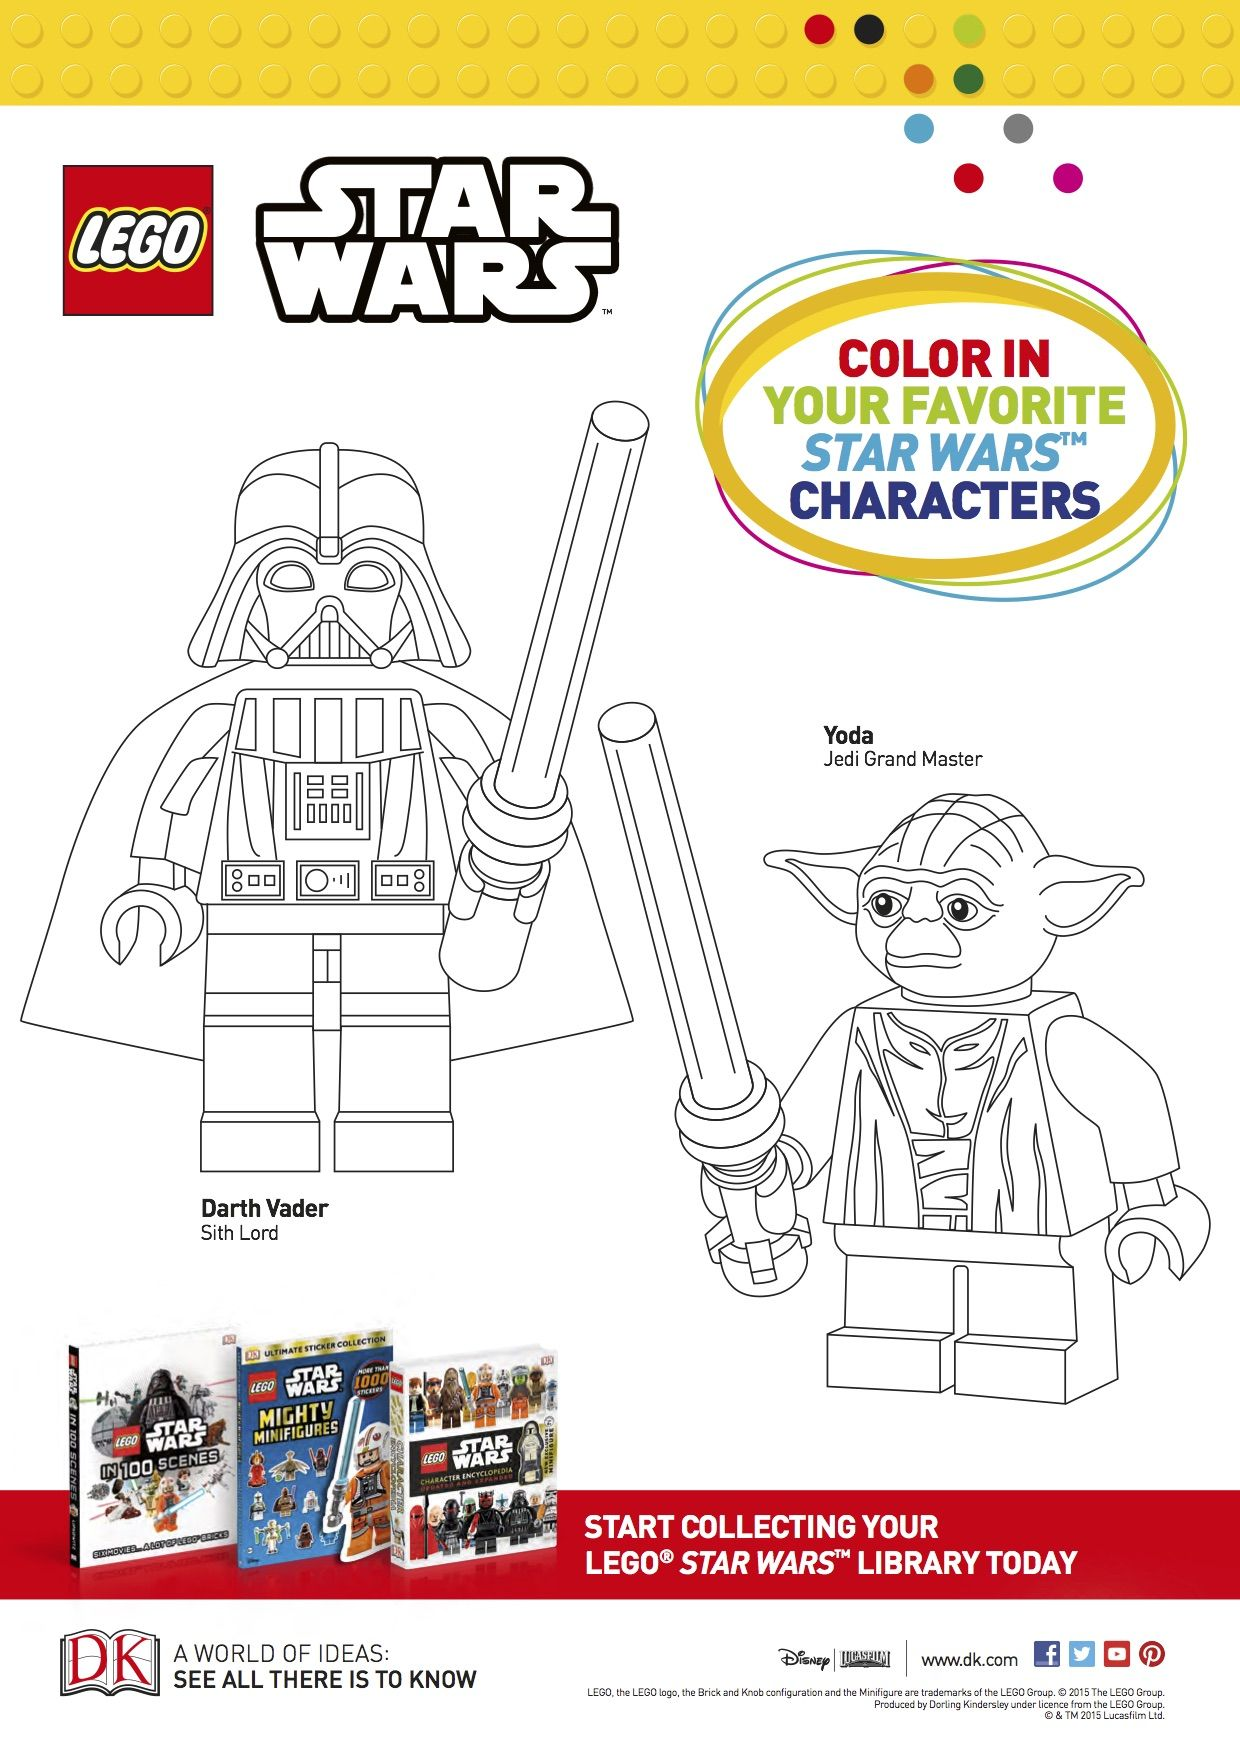 Lego Star Wars Coloring Sheet